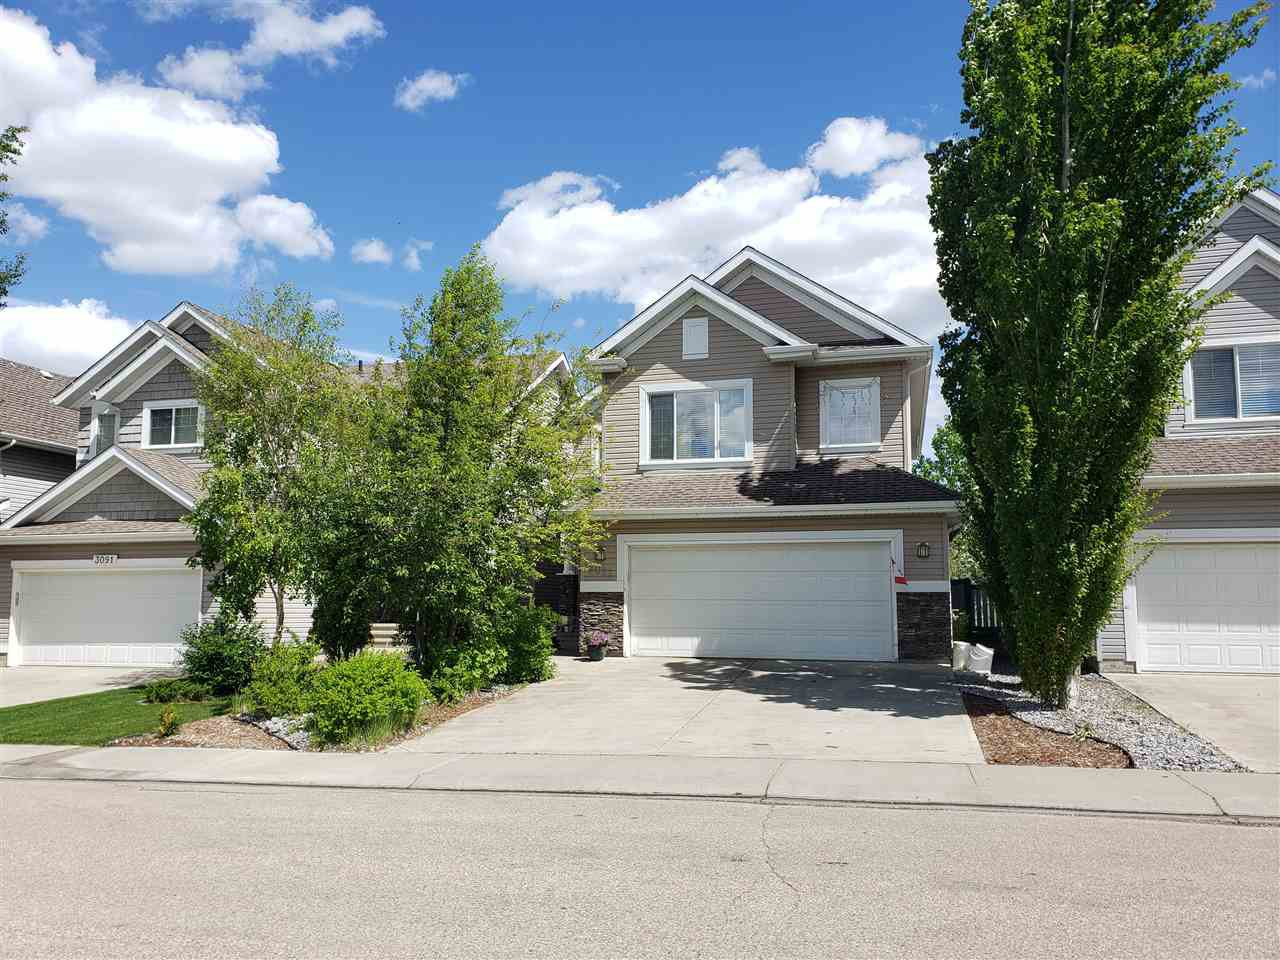 Main Photo: 3093 SPENCE Wynd in Edmonton: Zone 53 House for sale : MLS®# E4218194